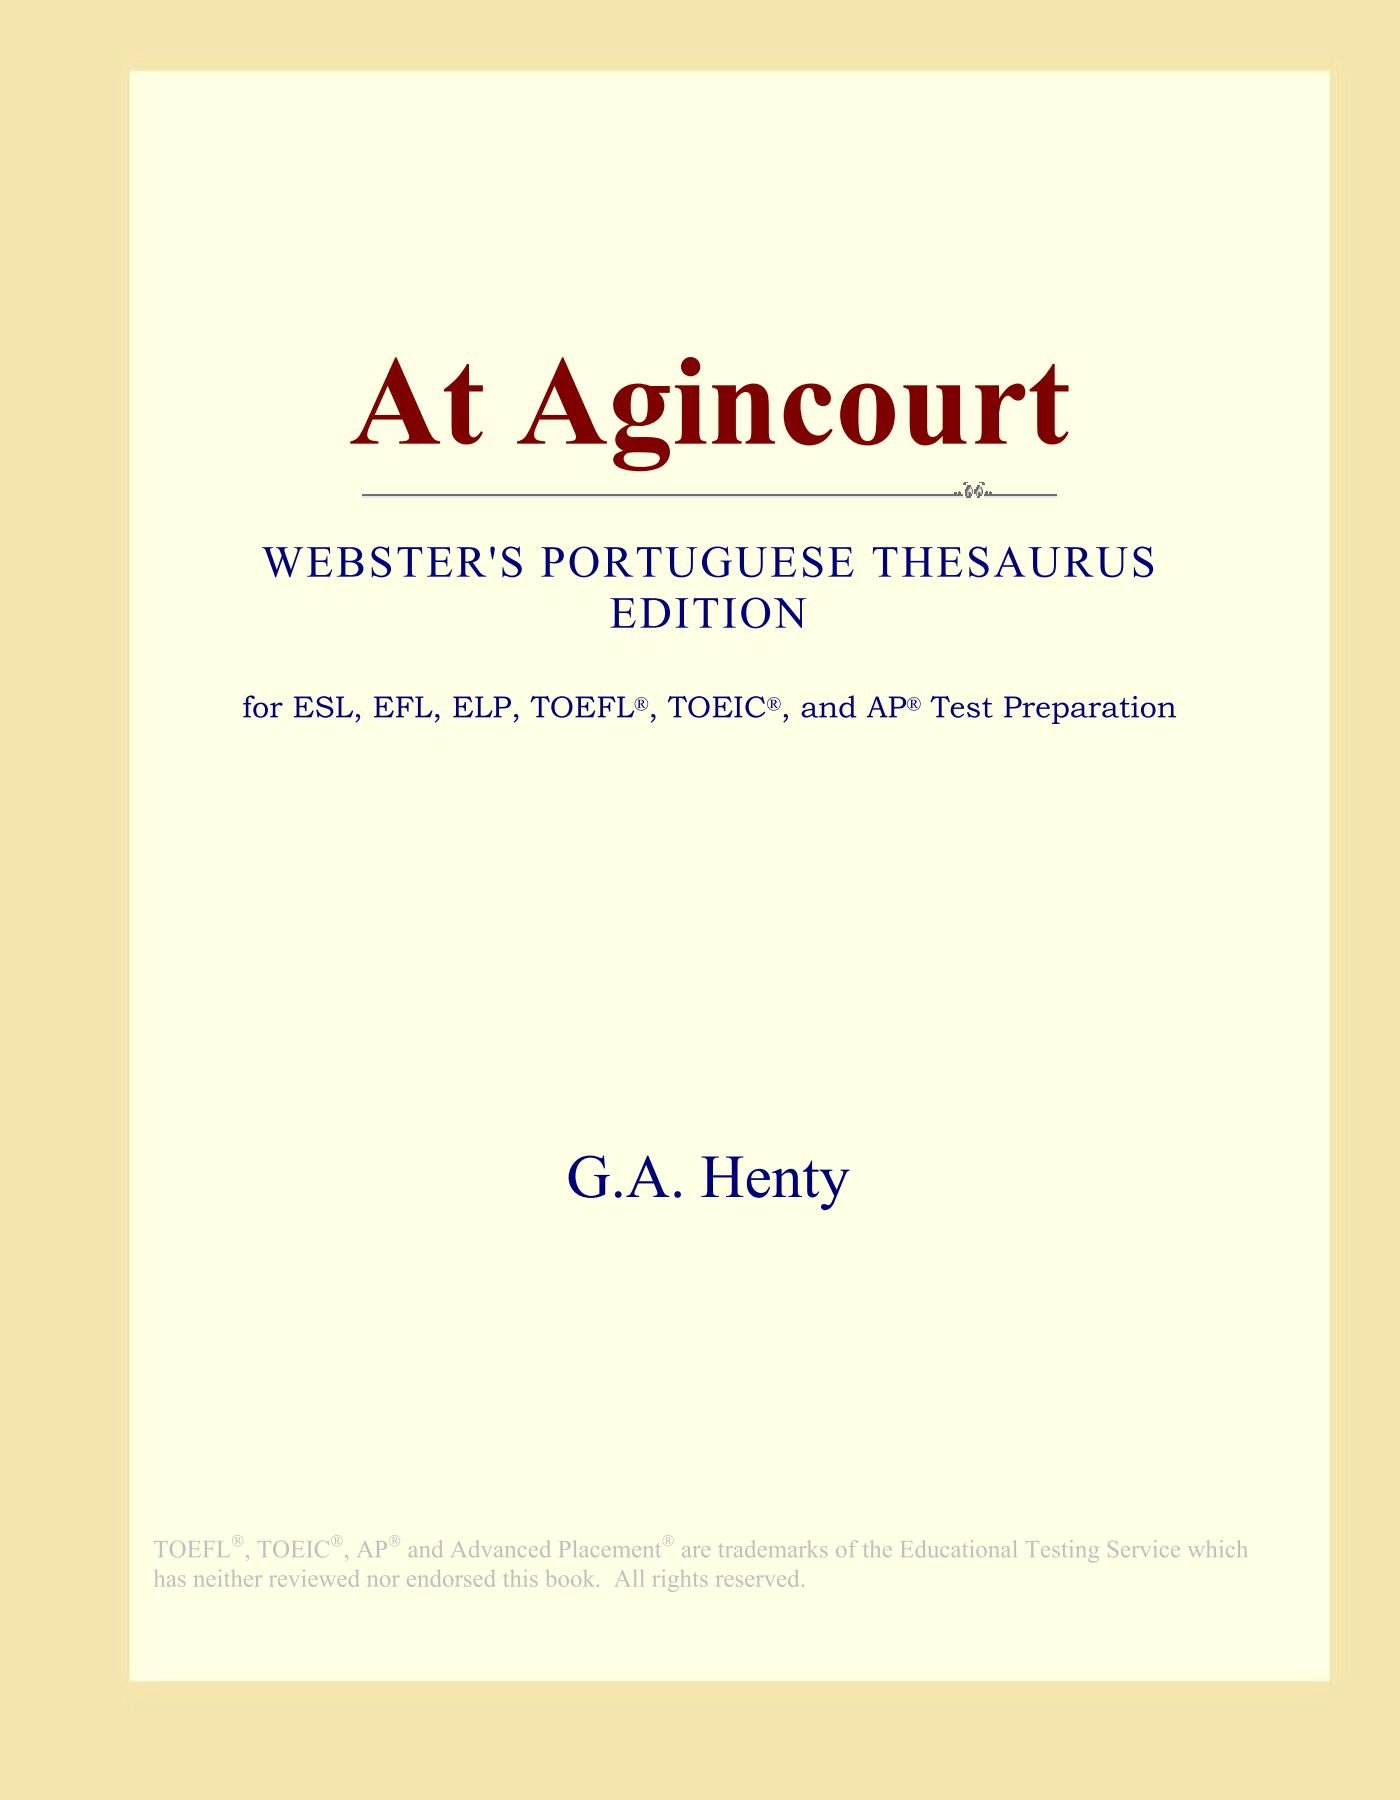 Download At Agincourt (Webster's Portuguese Thesaurus Edition) ebook